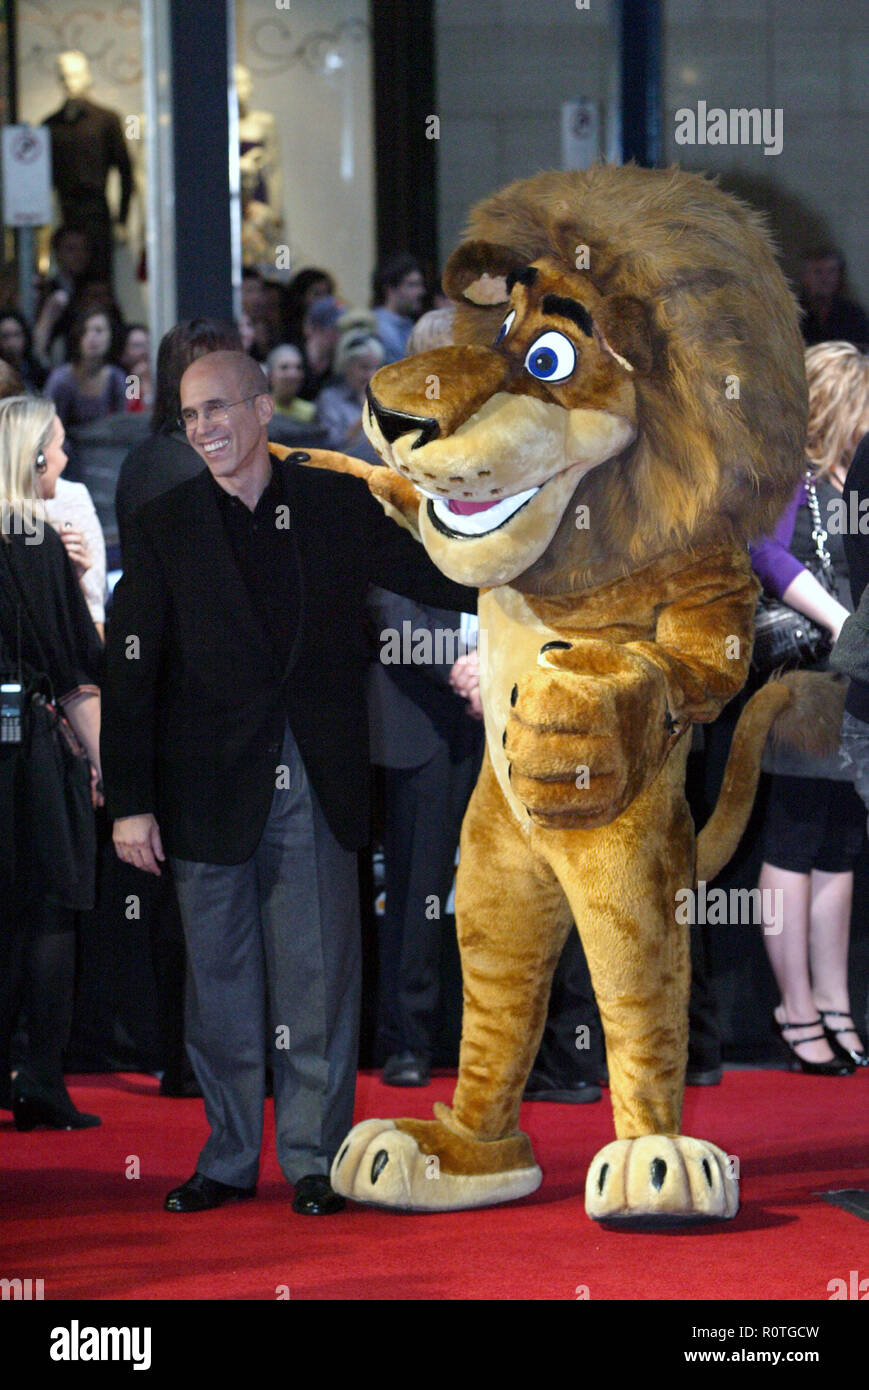 Jeffrey Katzenberg And Alex The Lion The Premiere Of Madagascar Escape 2 Africa At The State Theatre Sydney Australia 17 11 08 Stock Photo Alamy